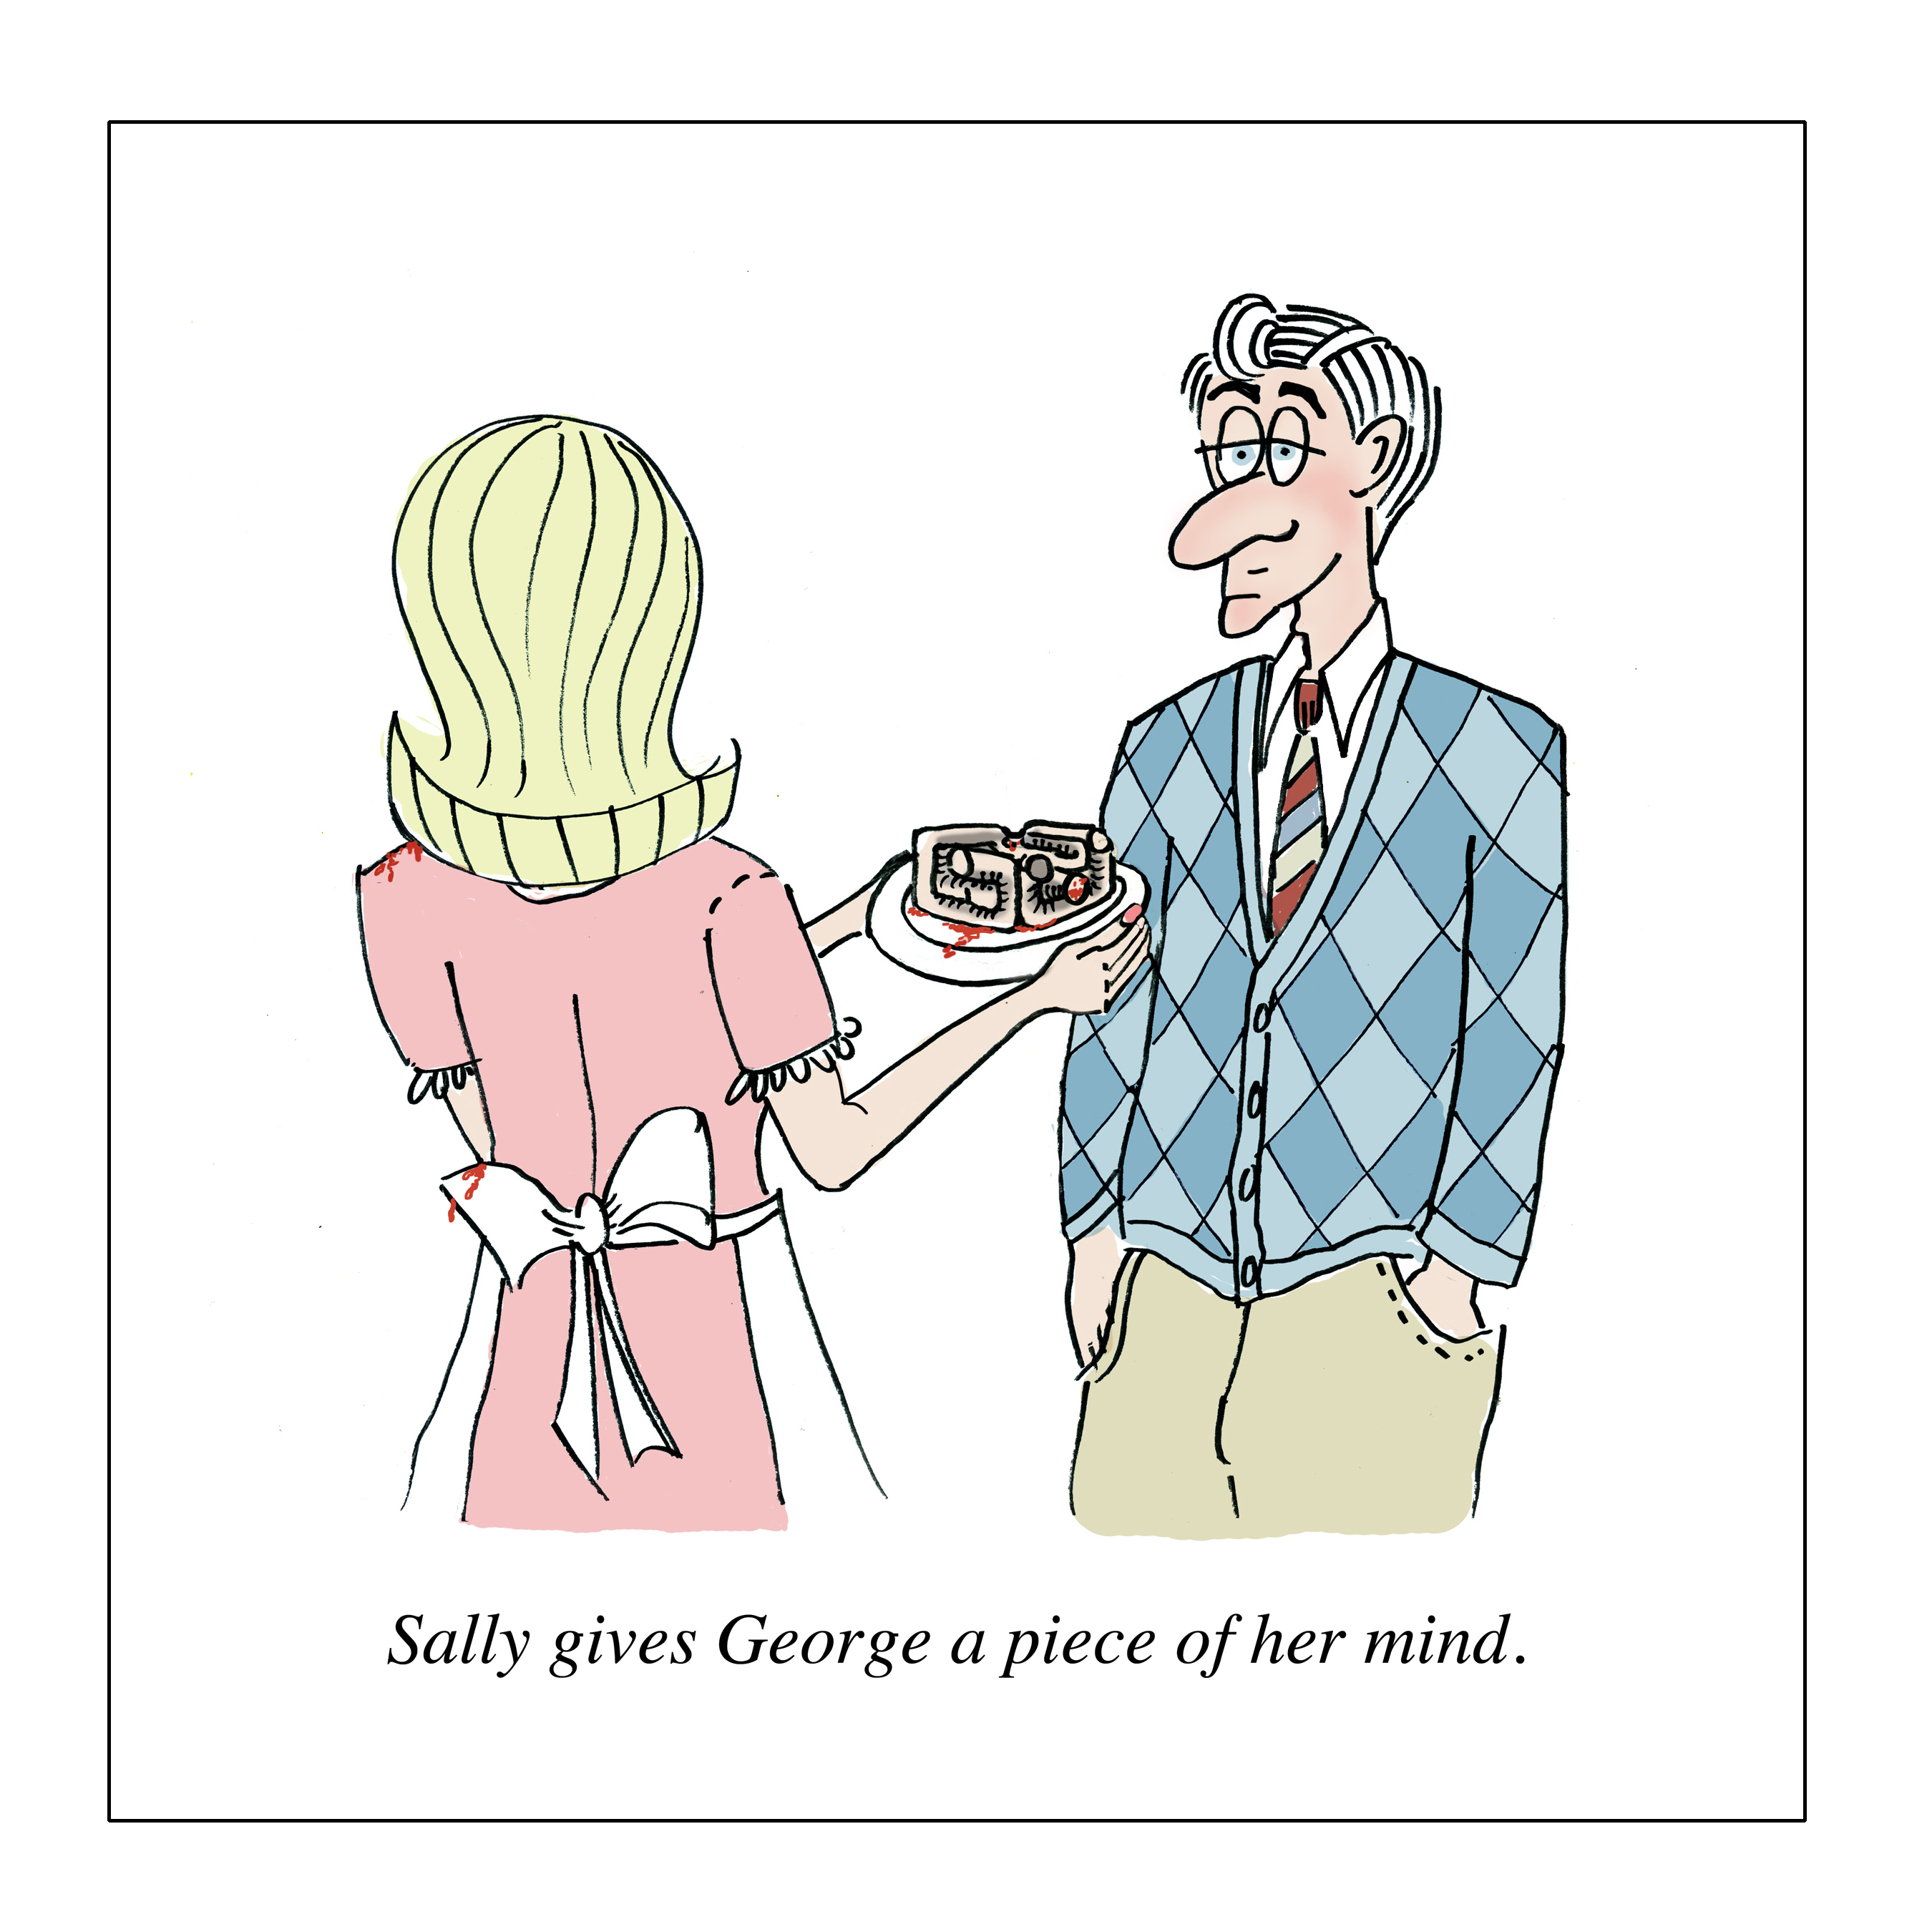 sally gives george a piece